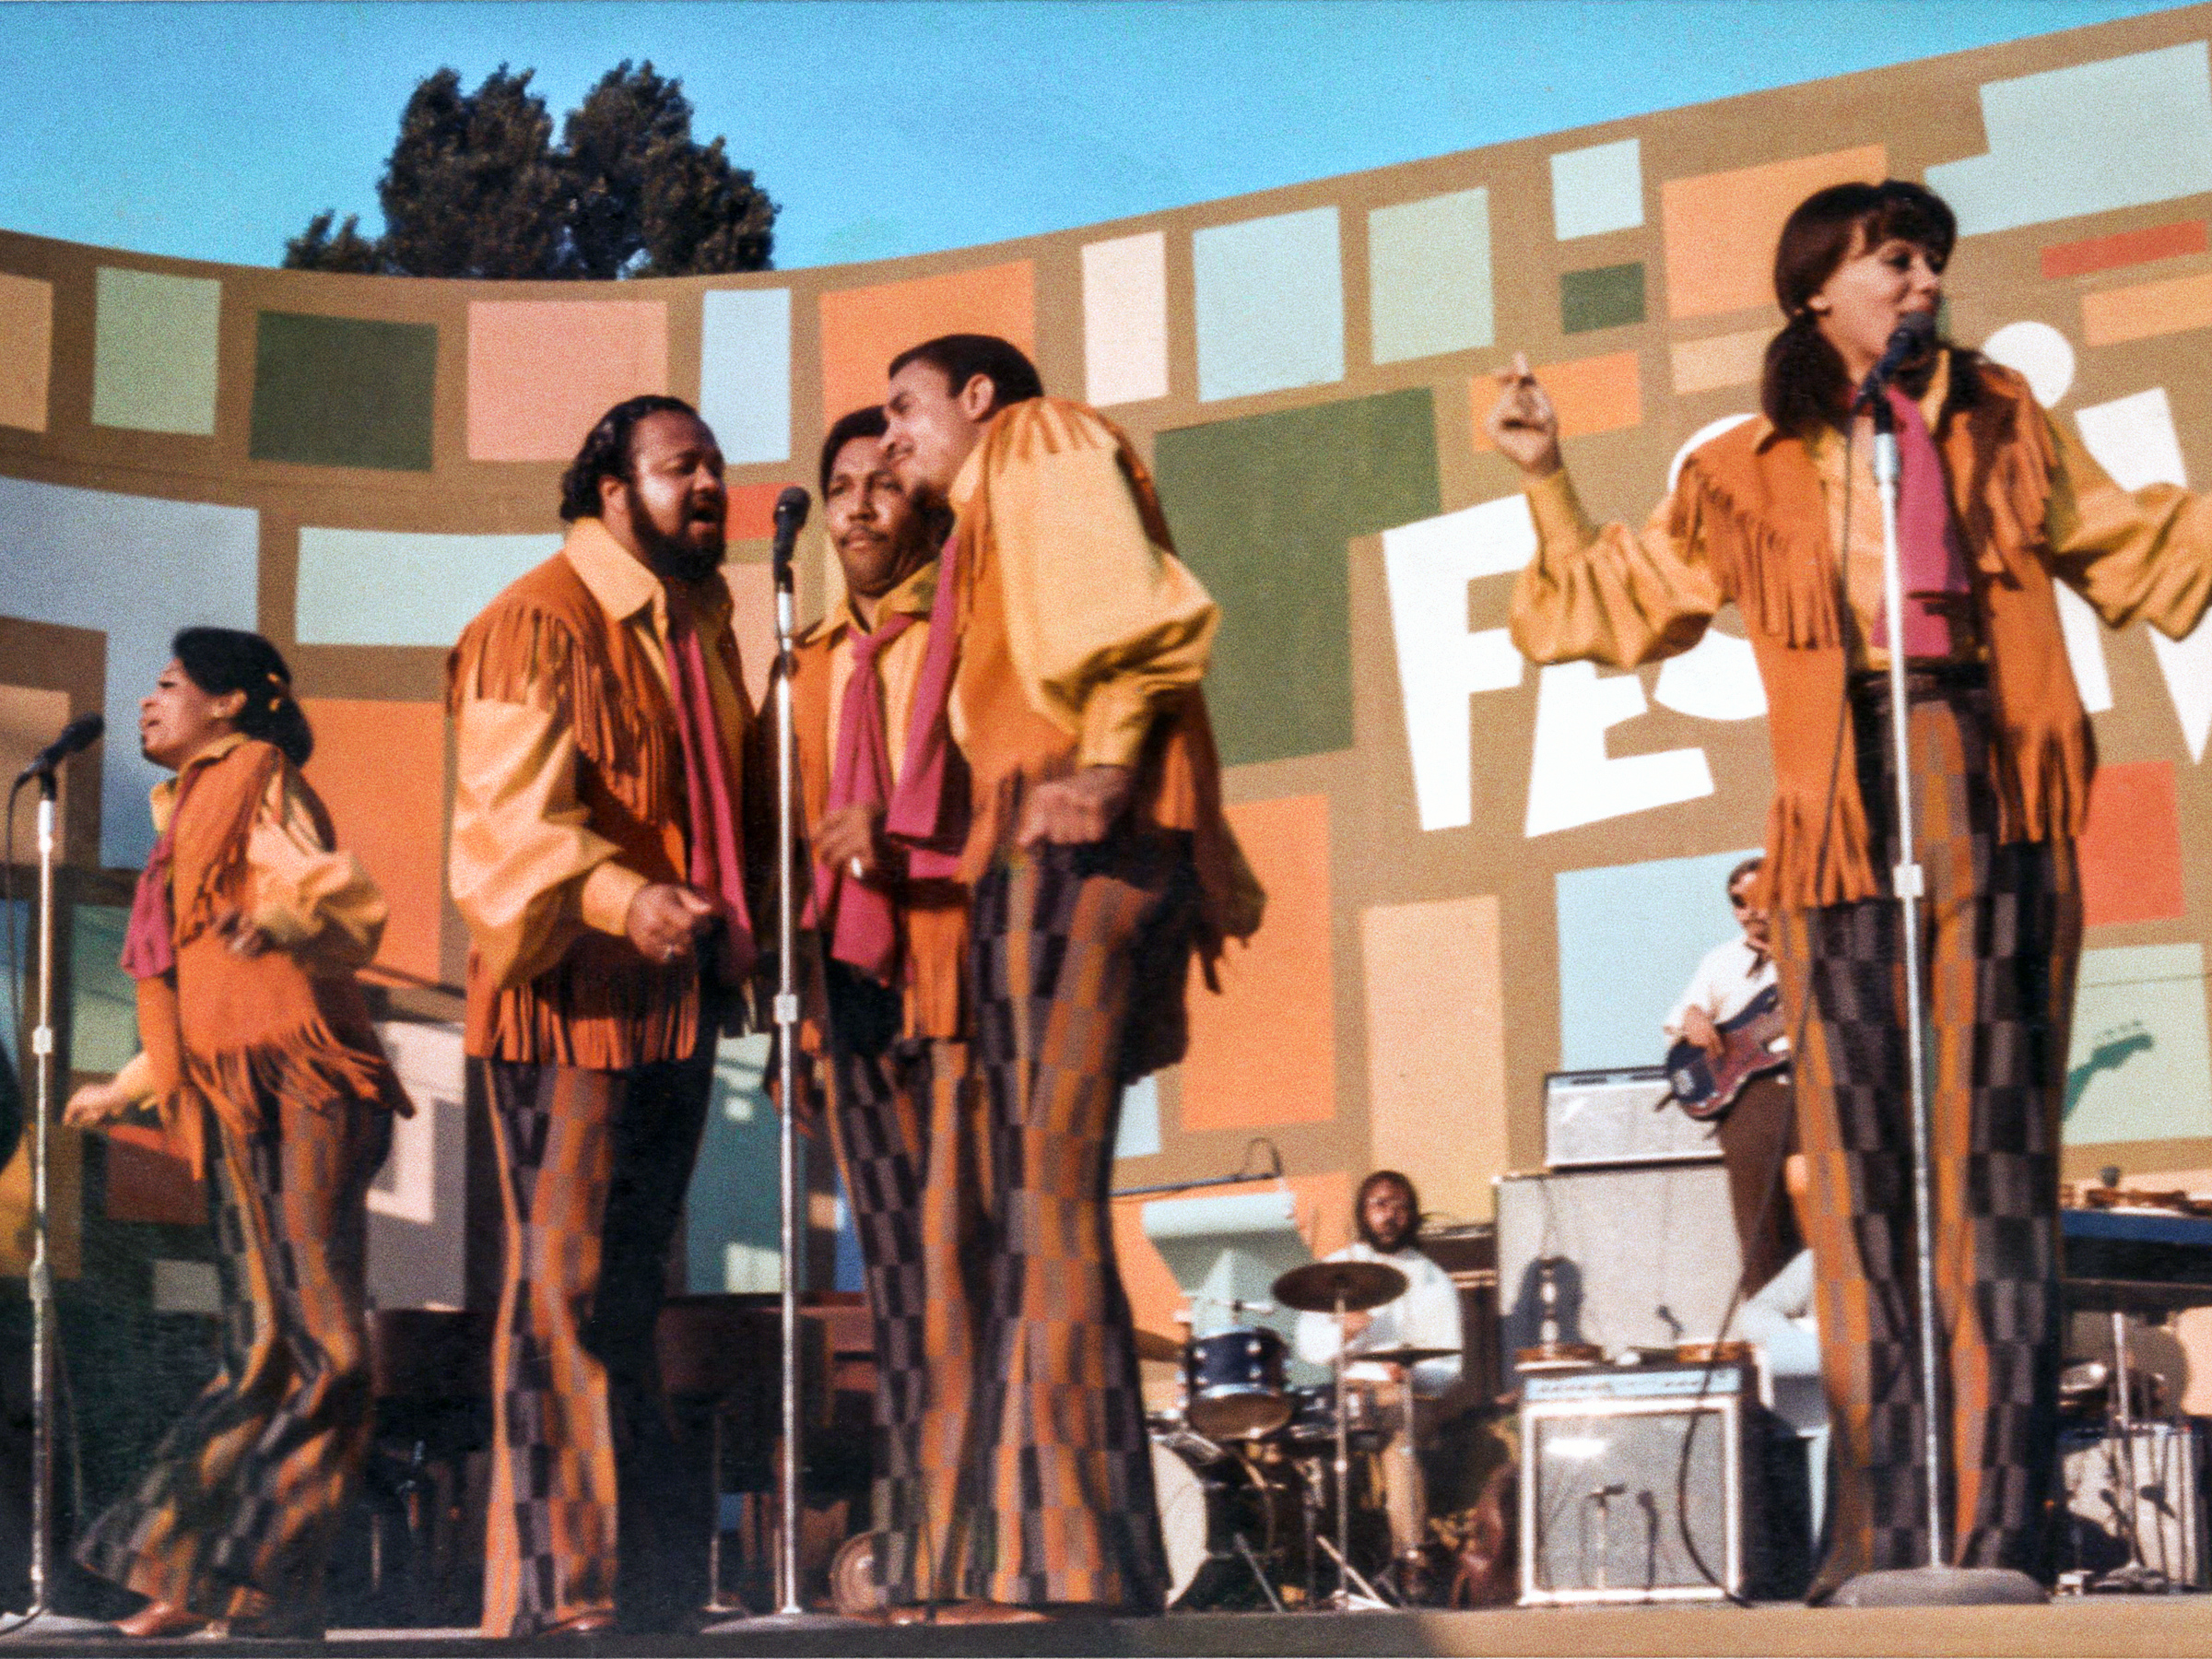 The 5th Dimension performing at the Harlem Cultural Festival in 1969, featured in the documentary 'Summer of Soul.'